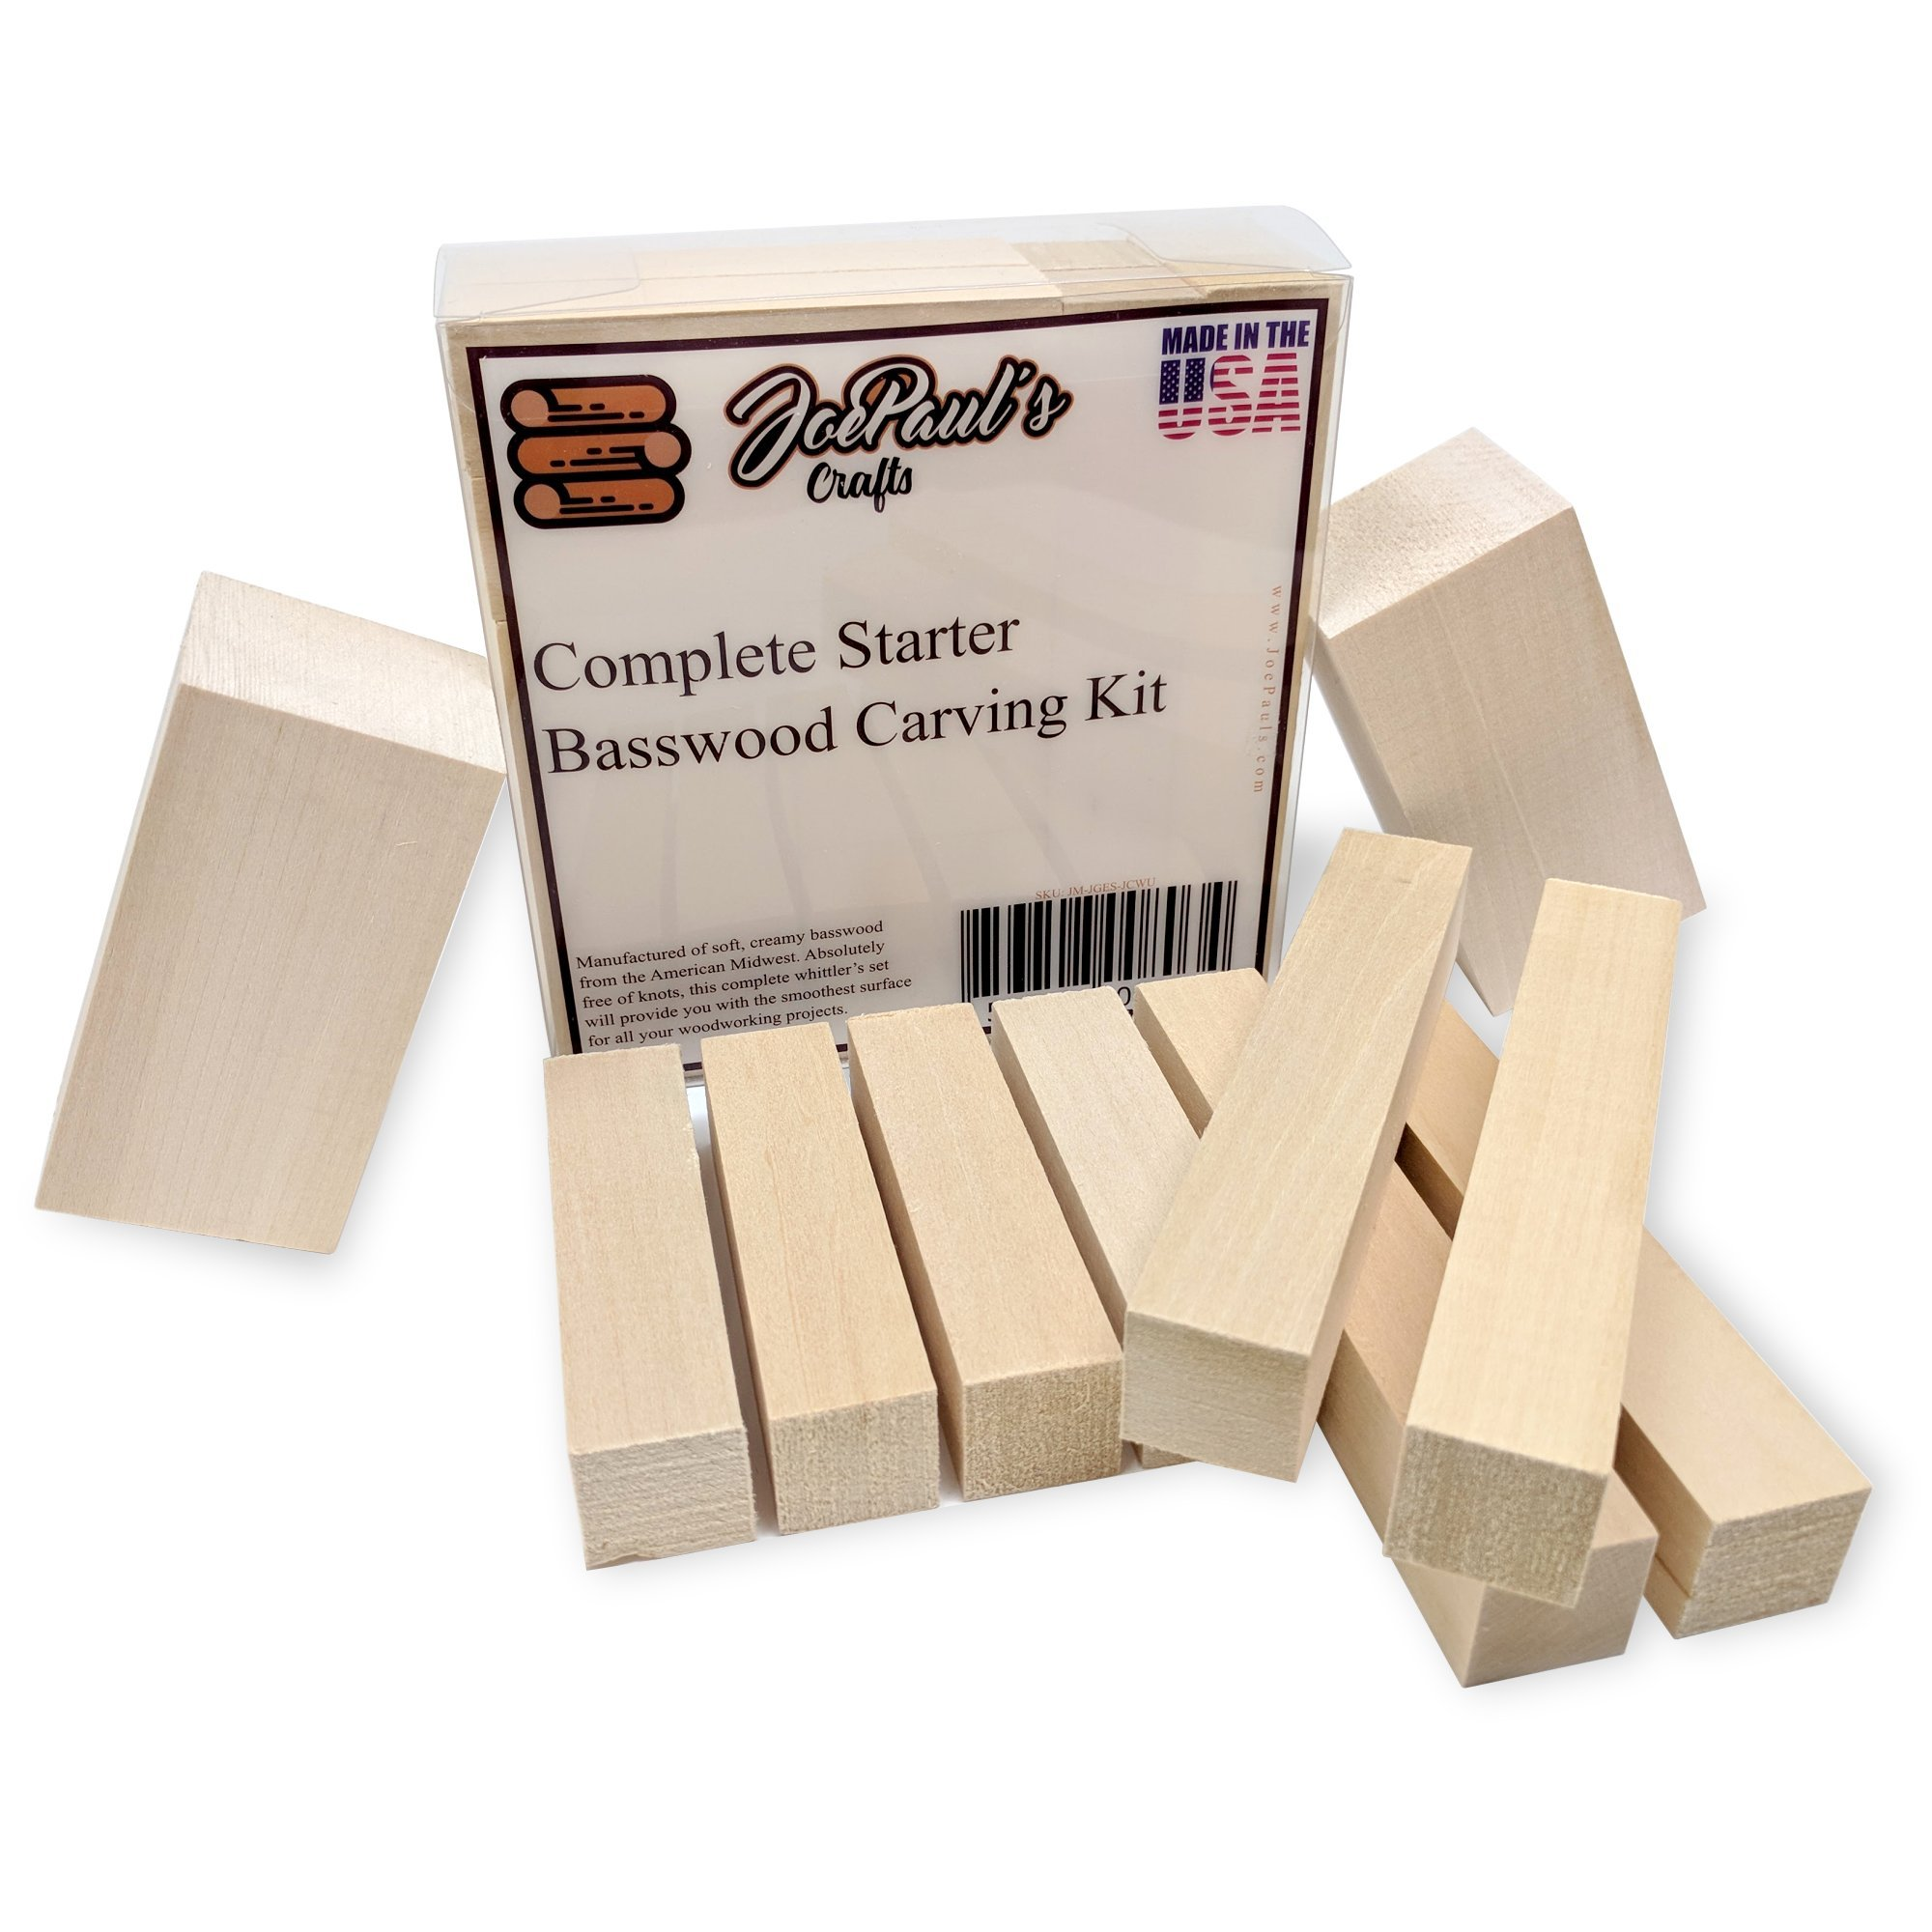 Large Basswood Carving Blocks Kit - Best Whittling Kit for Kids - Preferred Soft Wood Block Sizes Included - Made in The USA